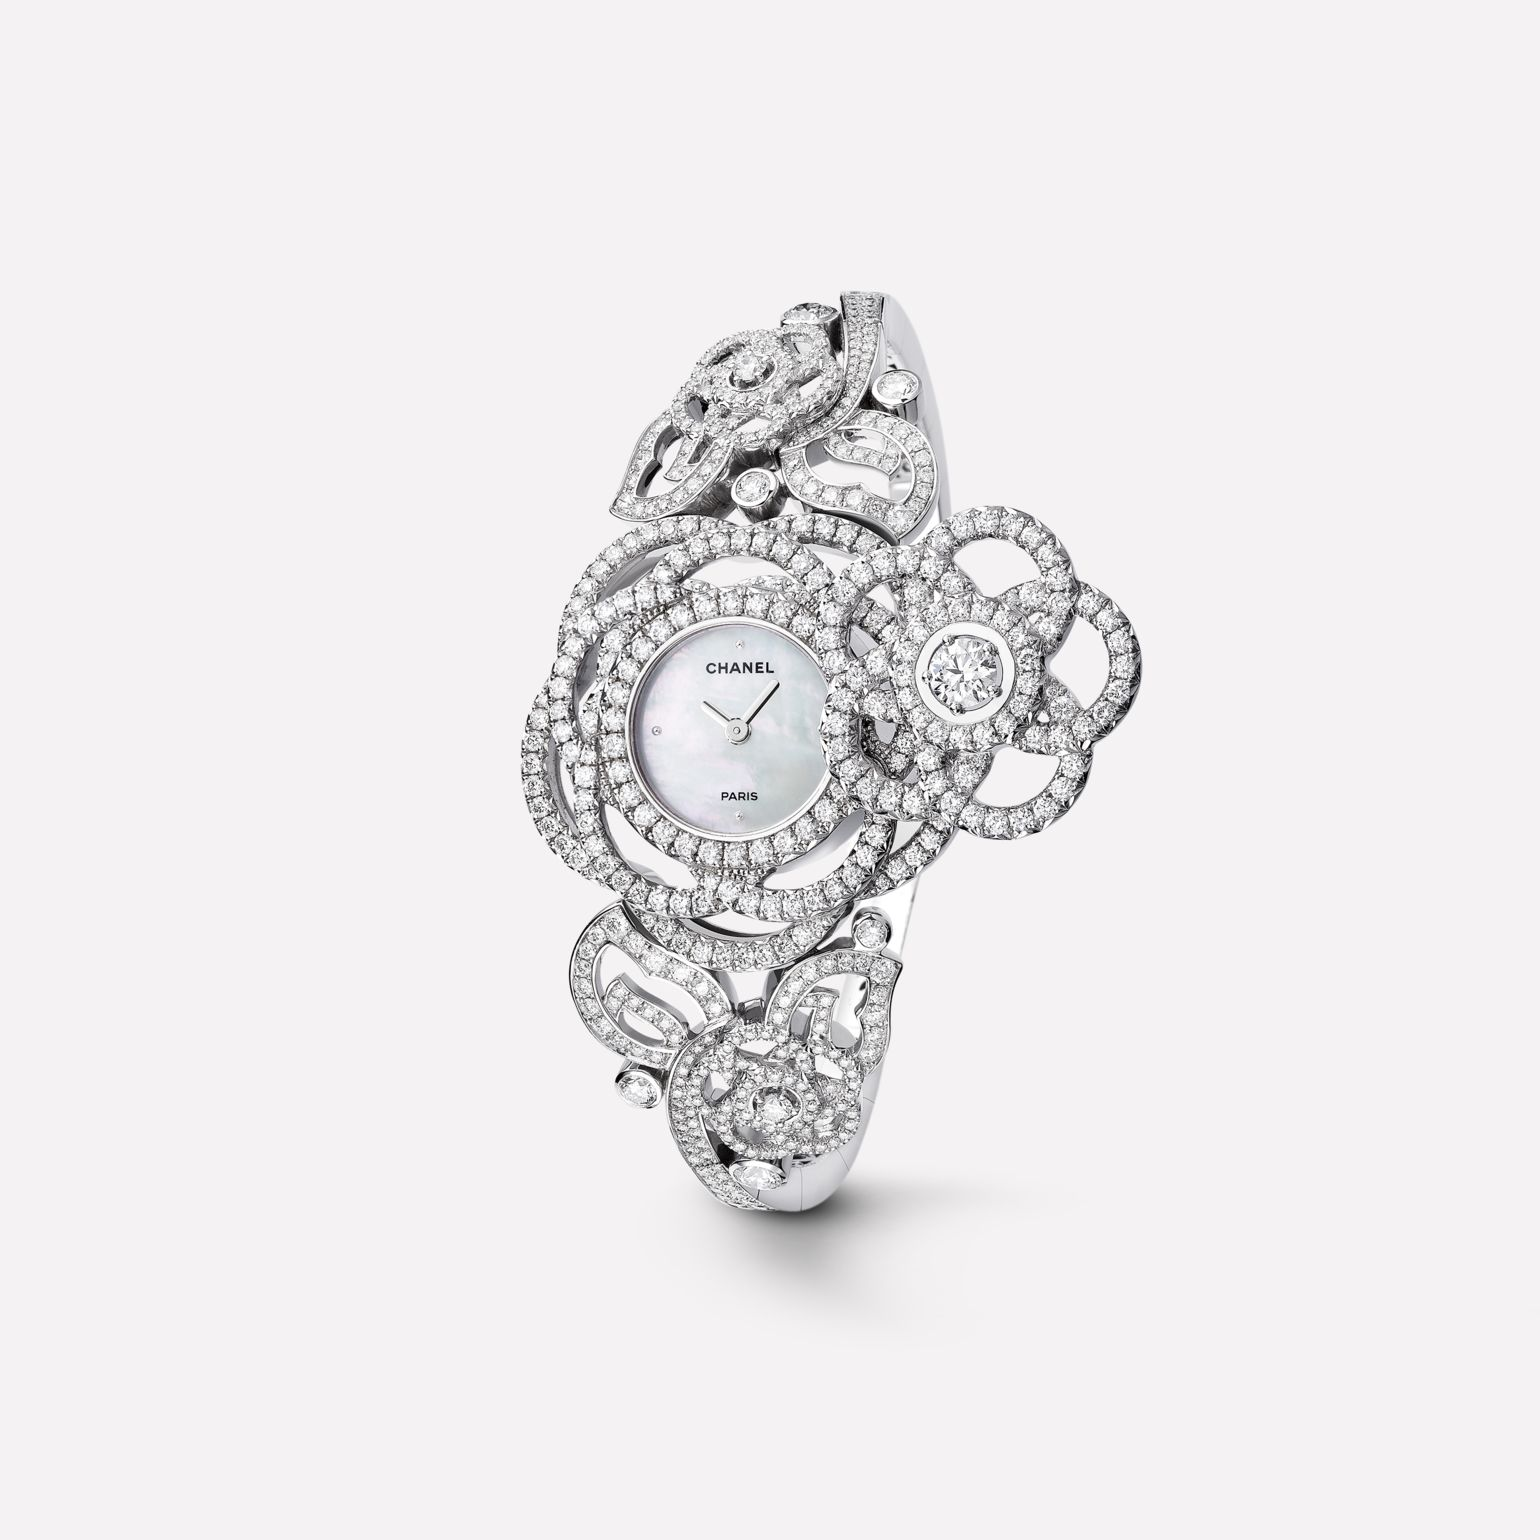 Camélia Jewelry Watch Secret watch with embroidered camellia motif in 18K white gold and diamonds with diamond bracelet - Large version